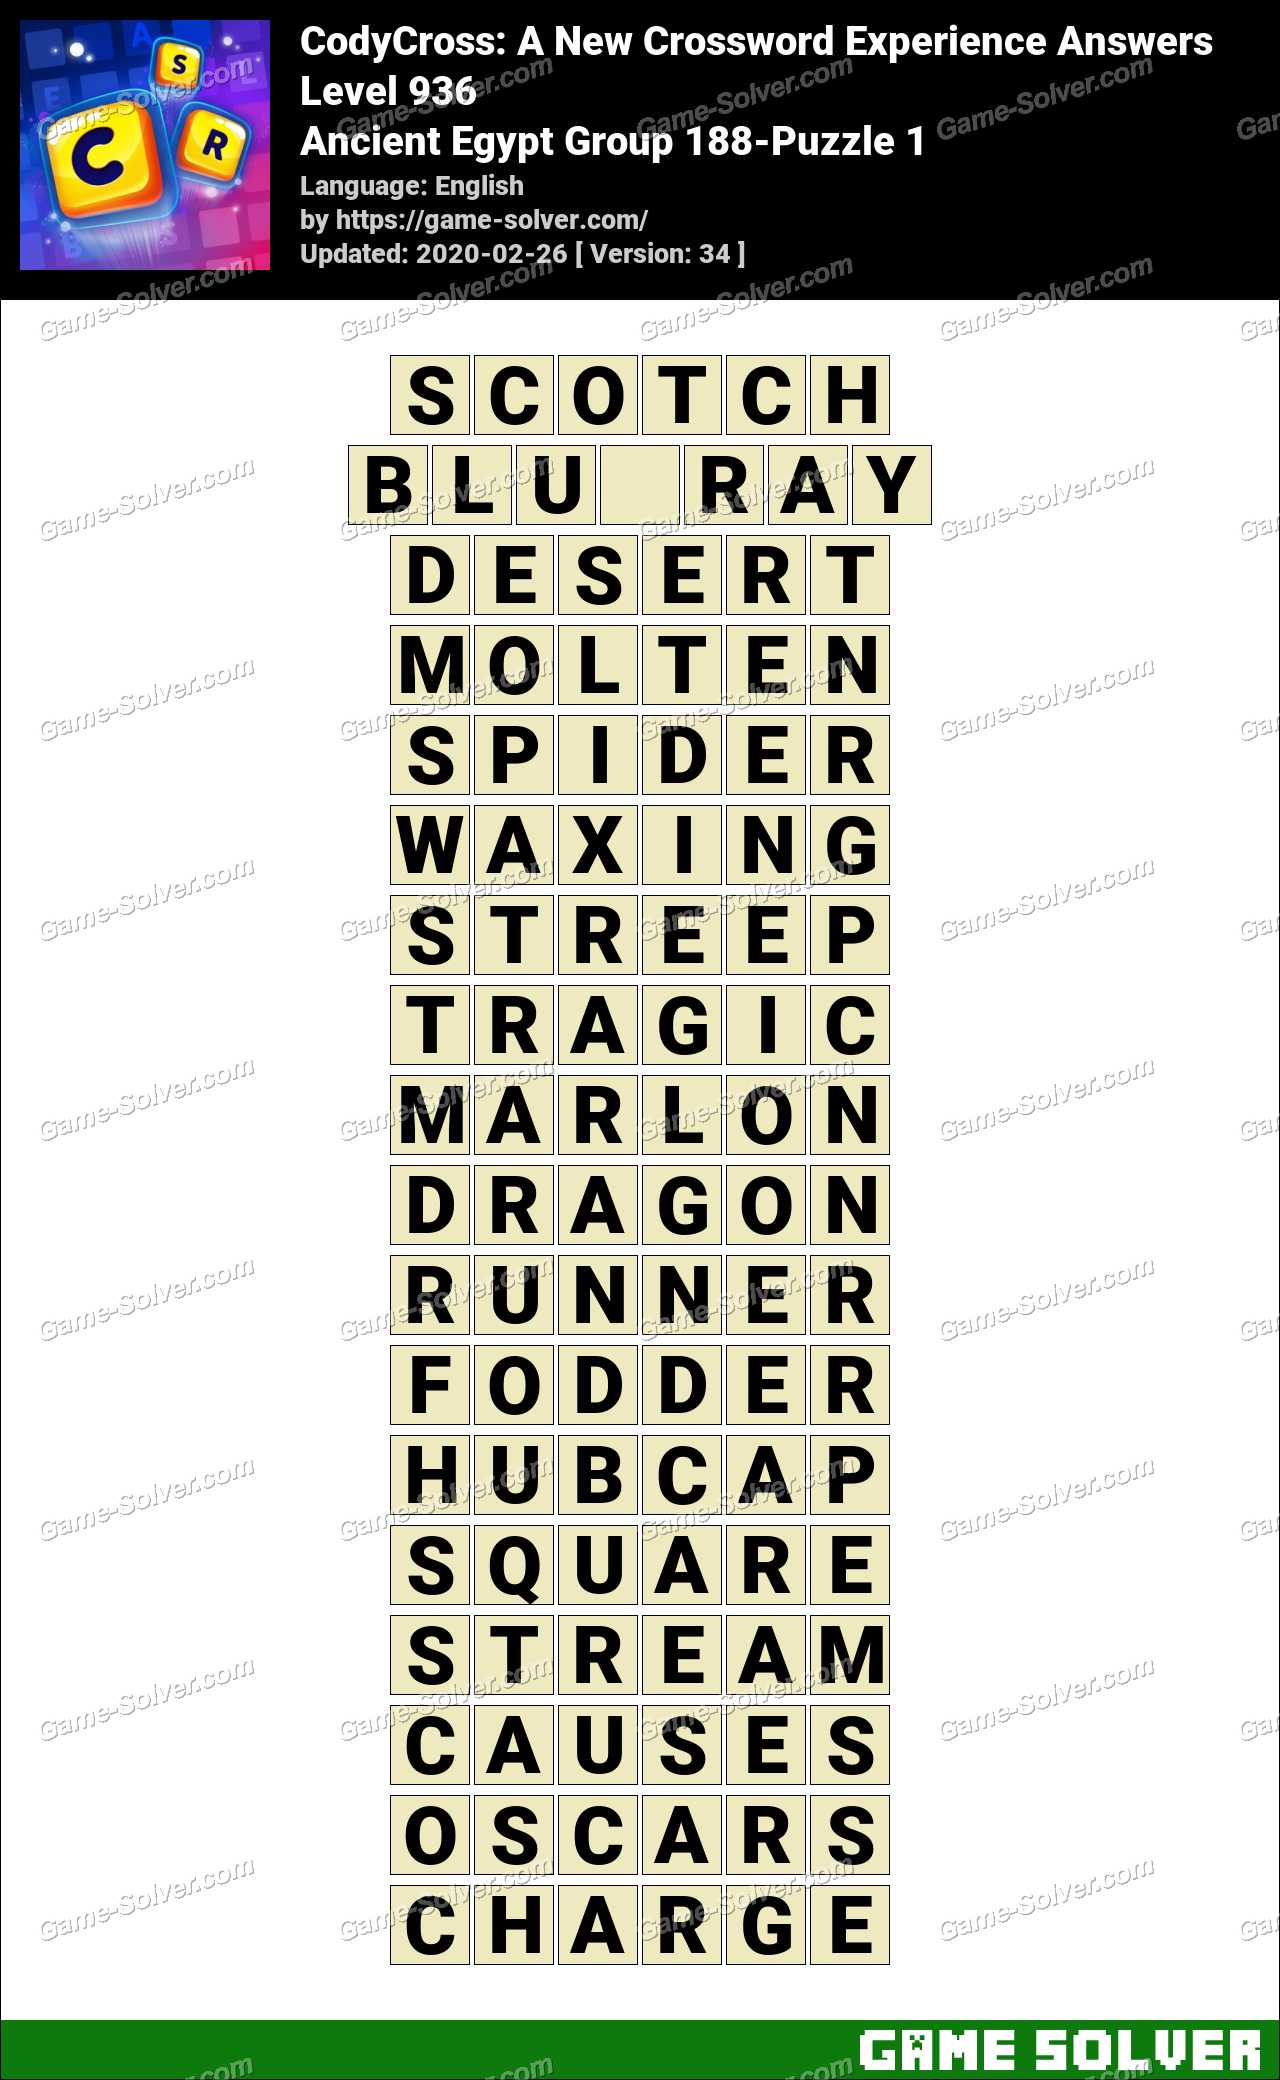 CodyCross Ancient Egypt Group 188-Puzzle 1 Answers